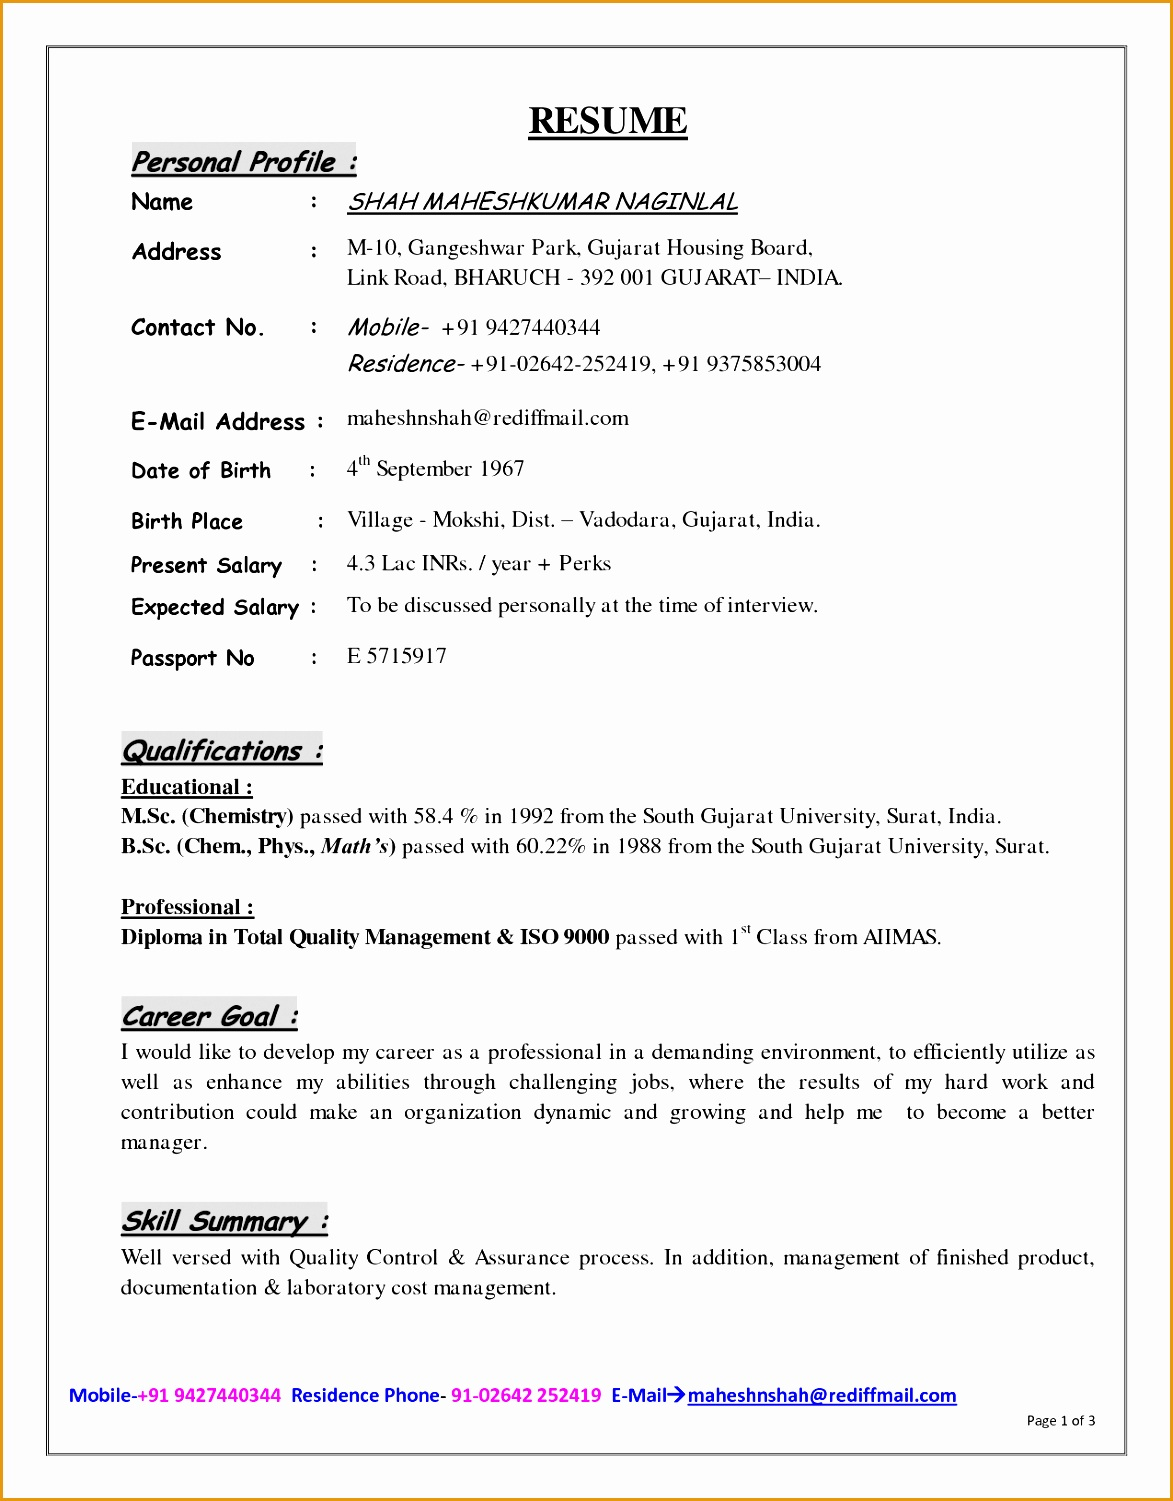 personal profile resume sample 6 best and professional templates